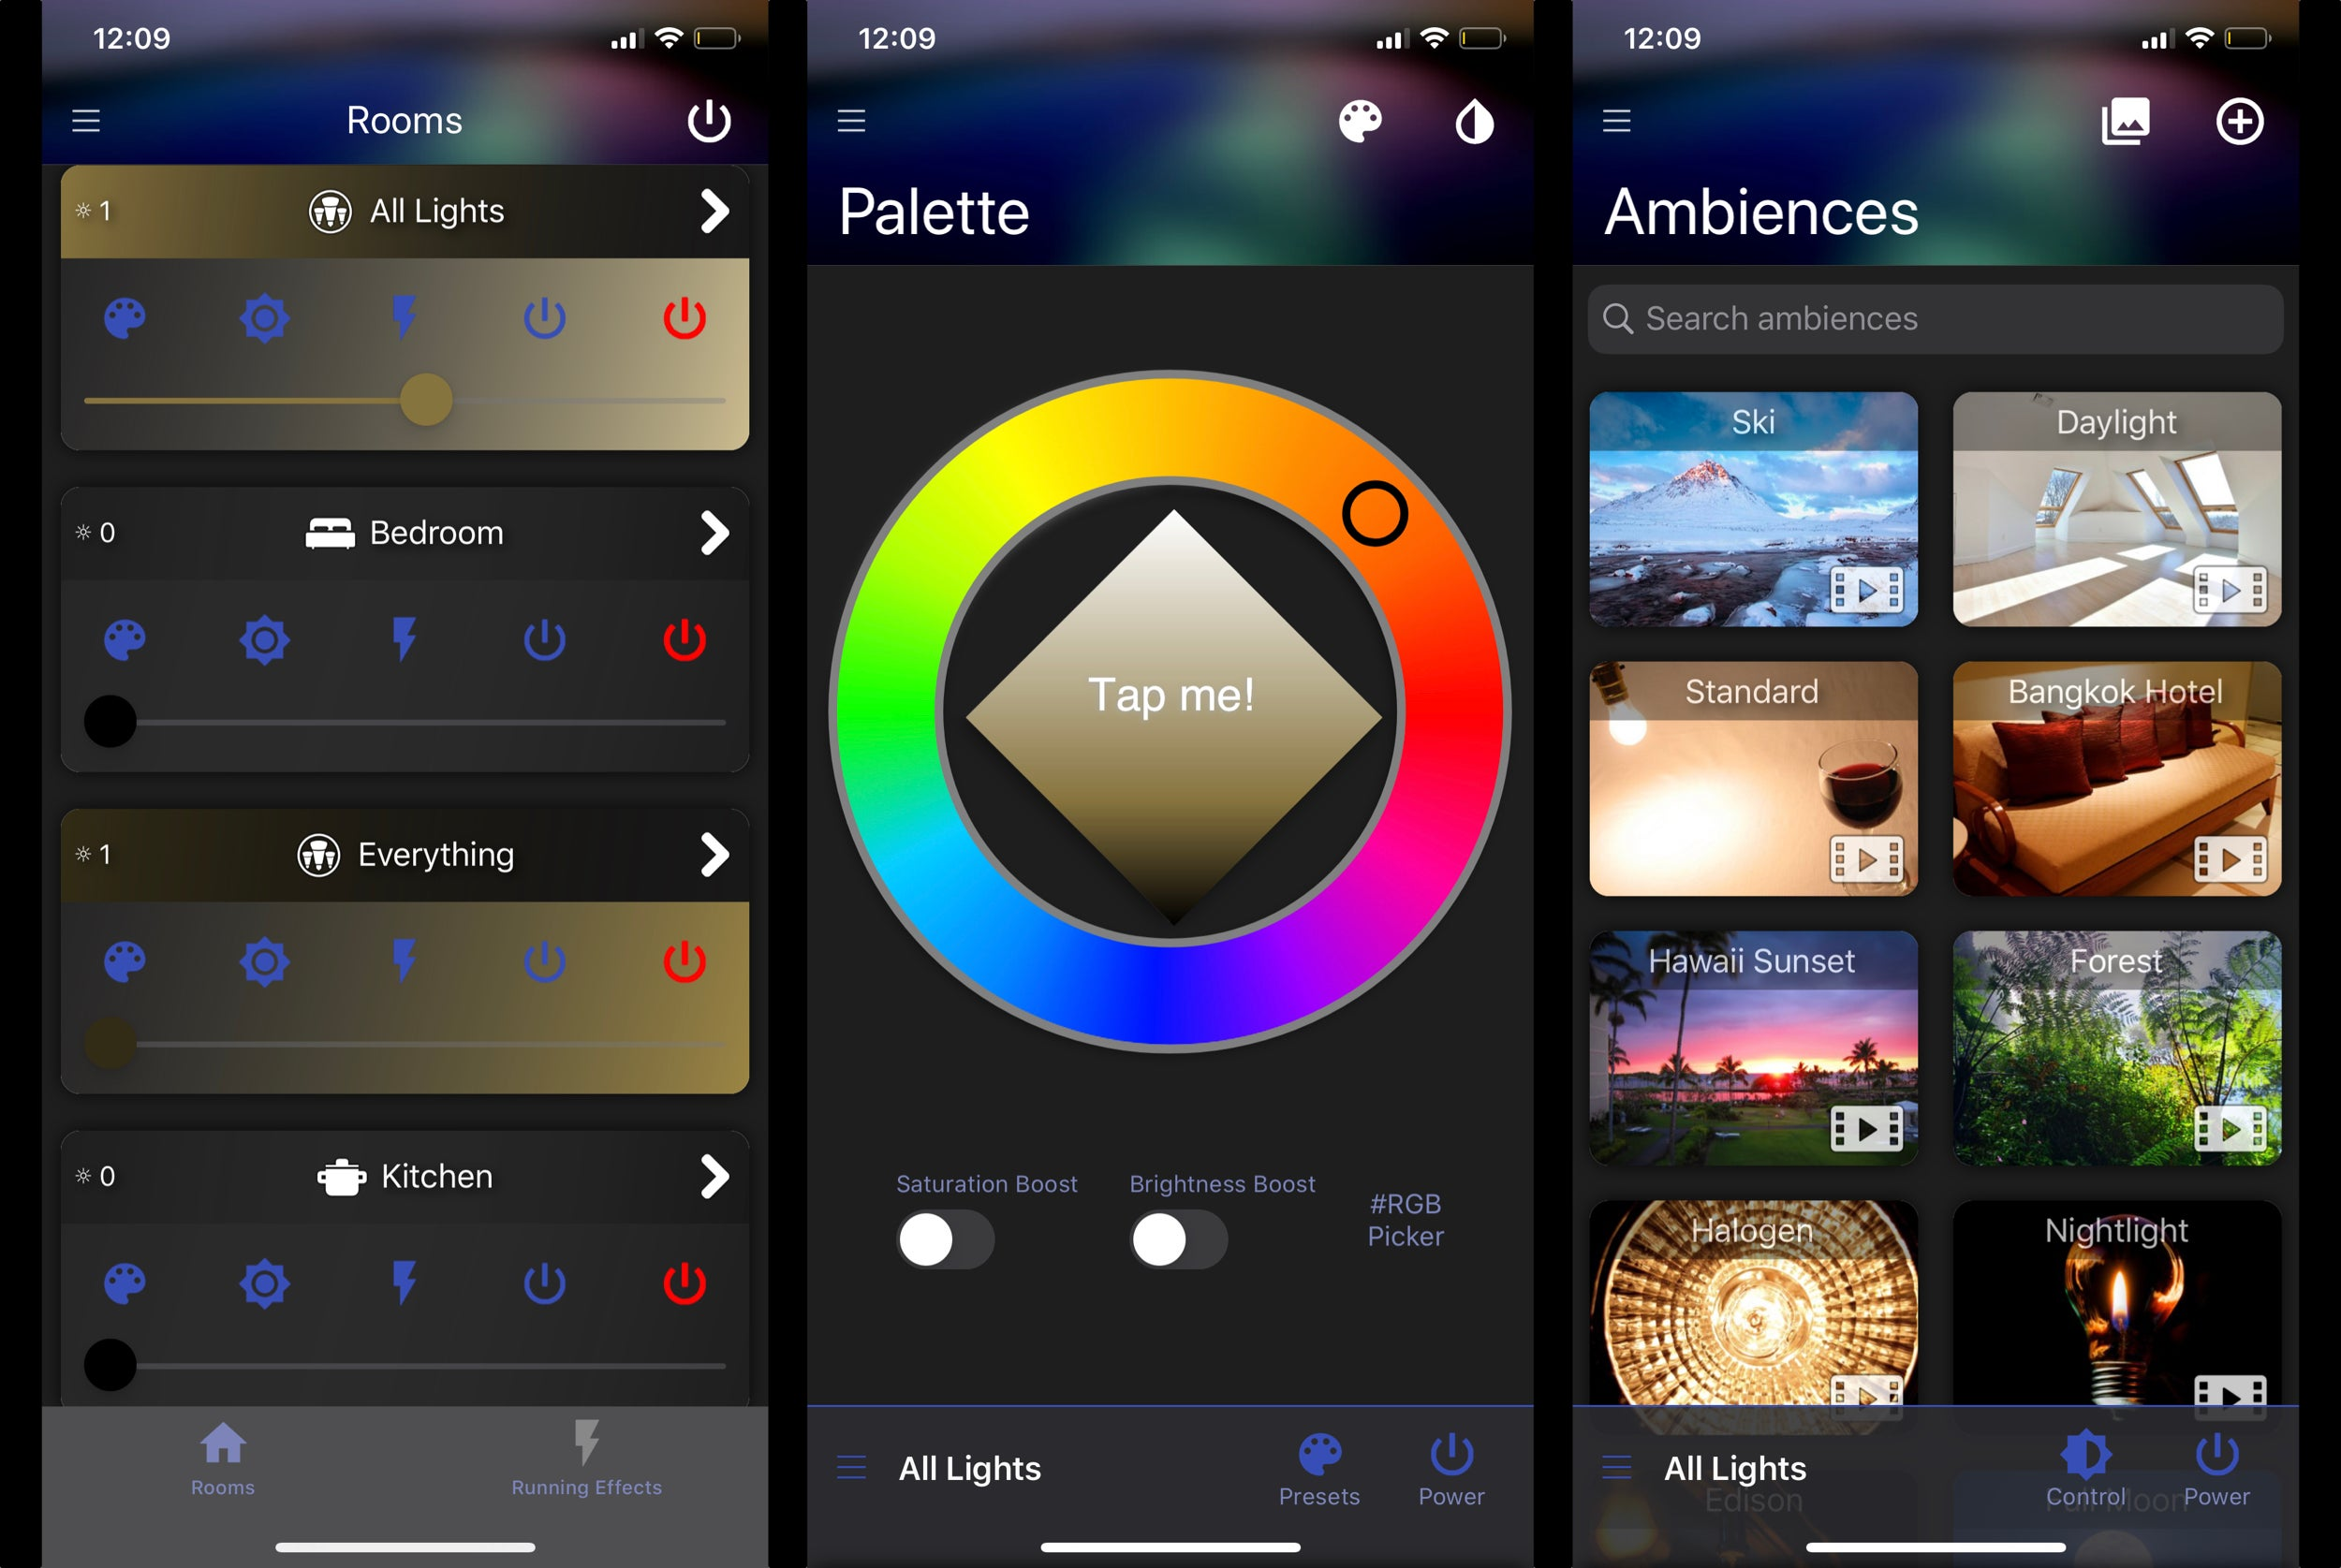 hueDynamic is one of the Philips Hue apps